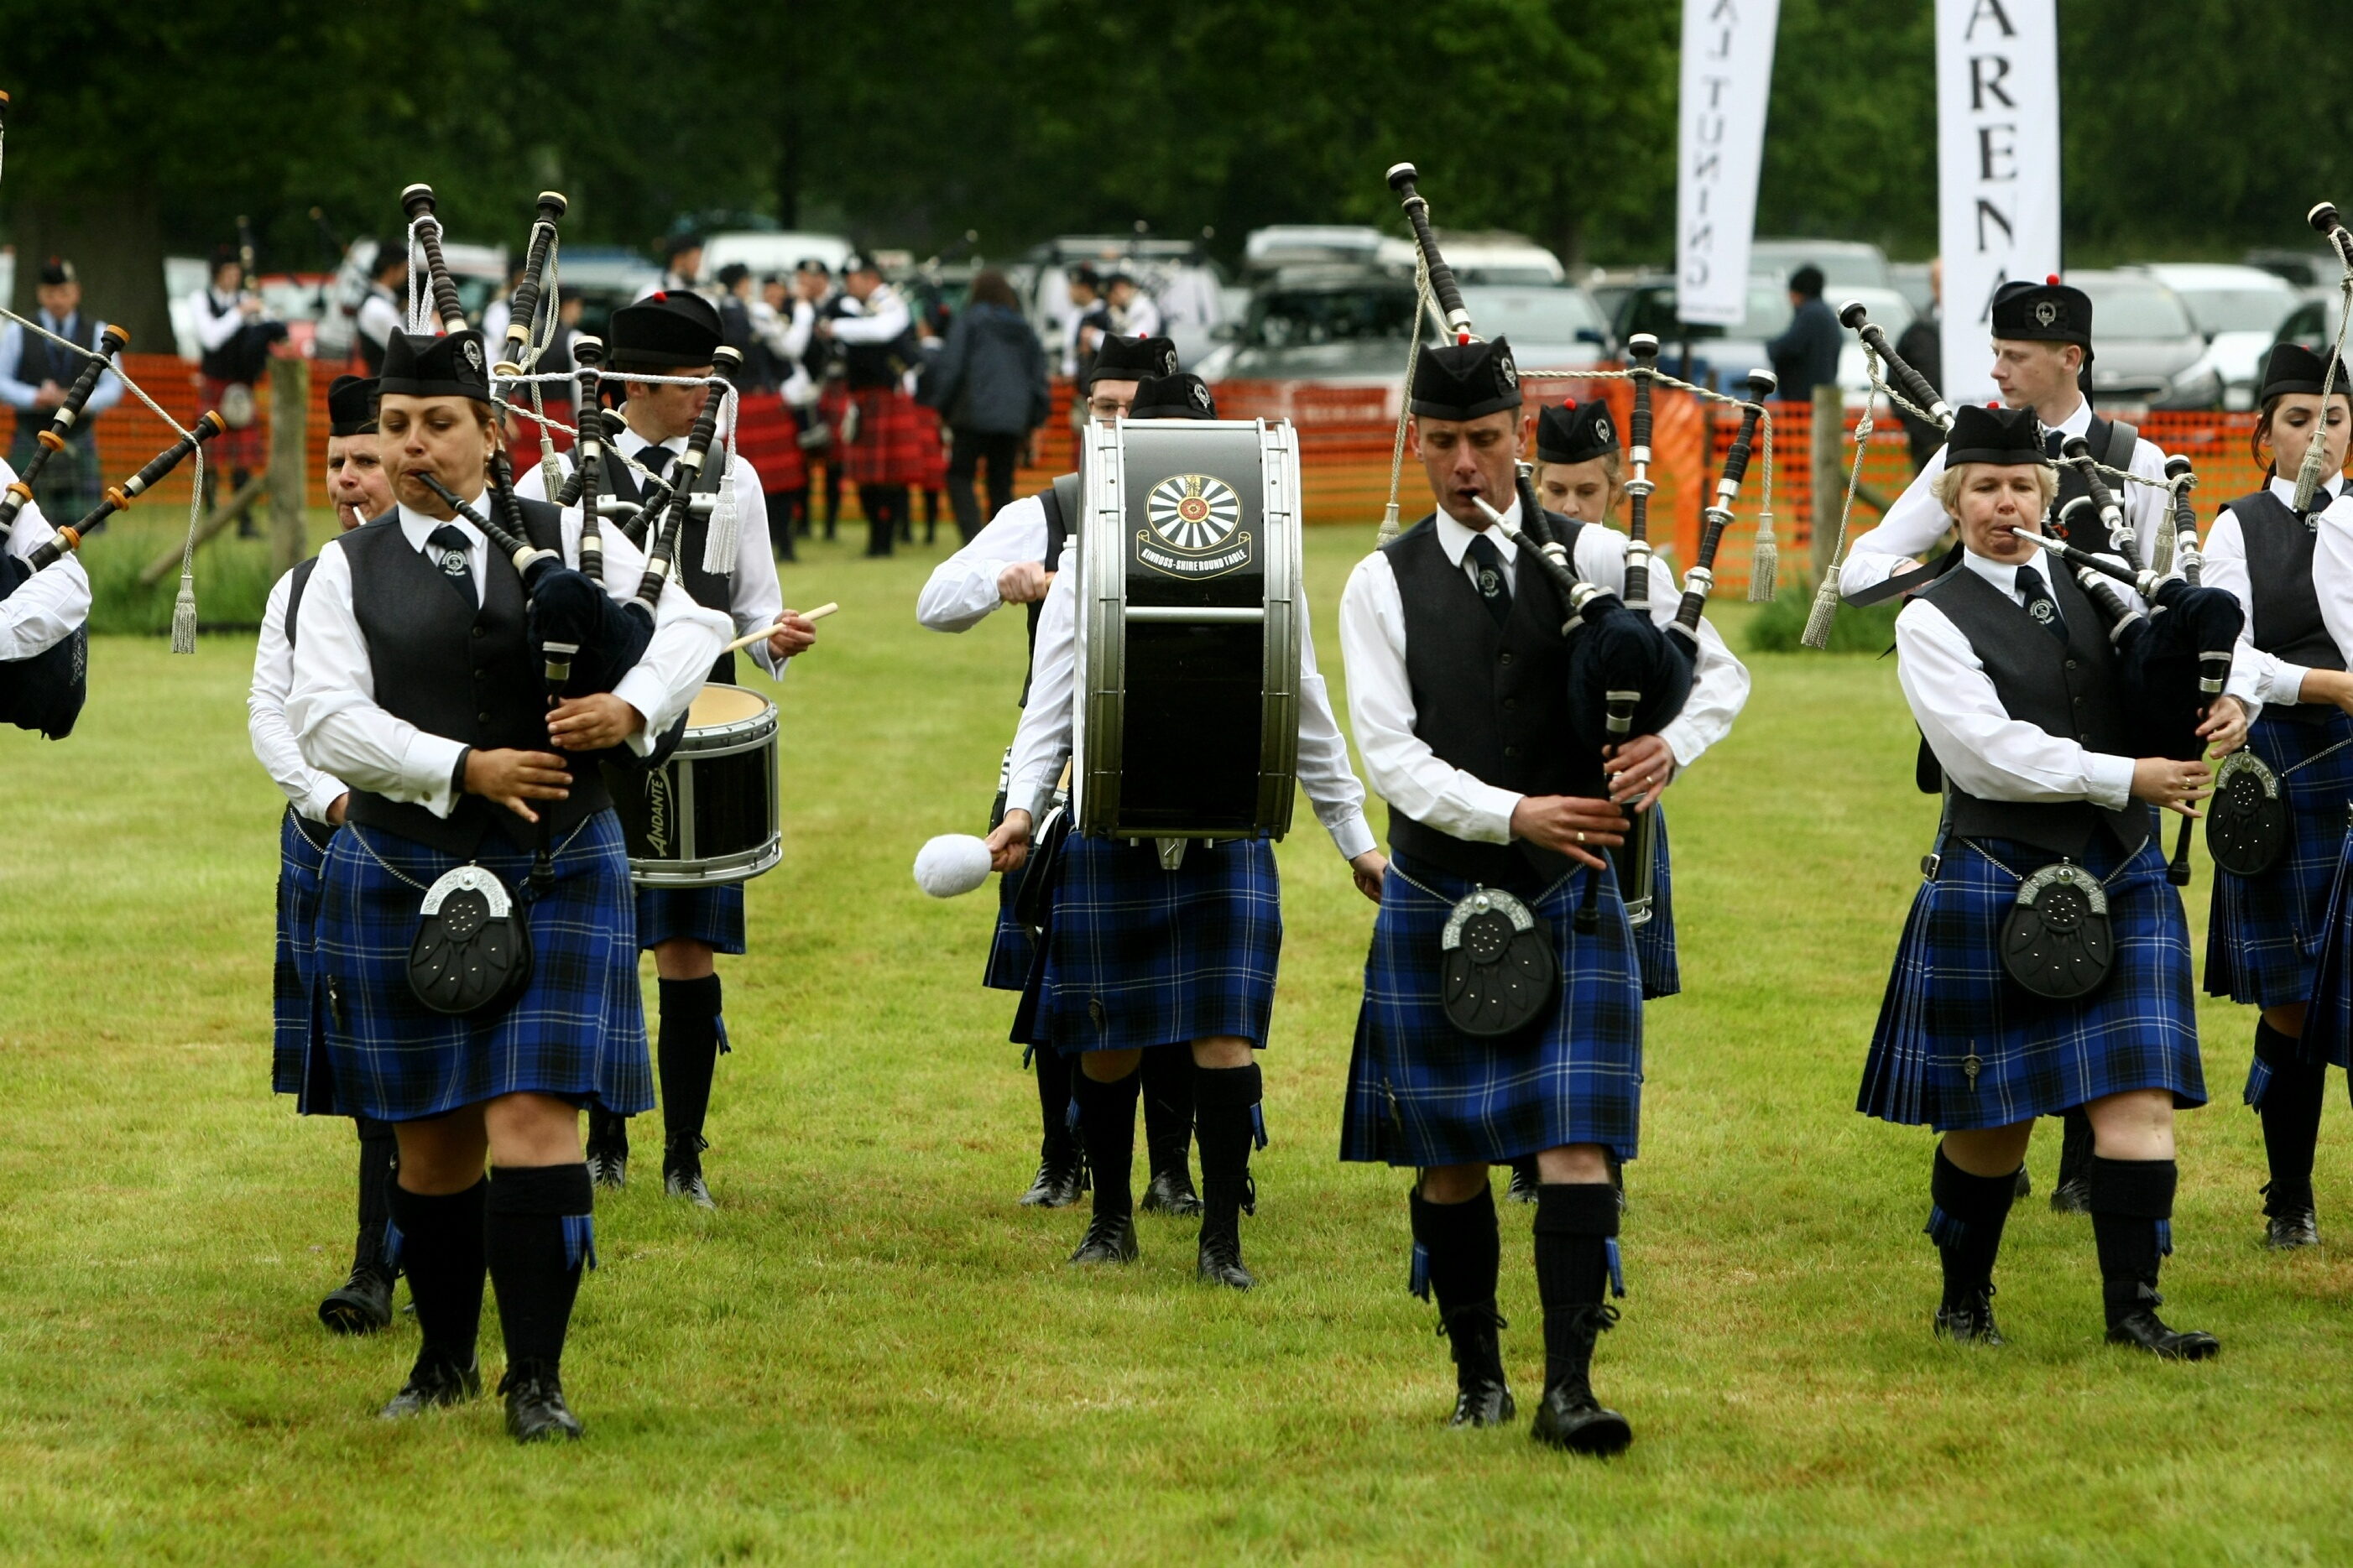 The Kinross & District Pipe Band competing in the Pipe Band Competition at the Strathmore Highland Games.